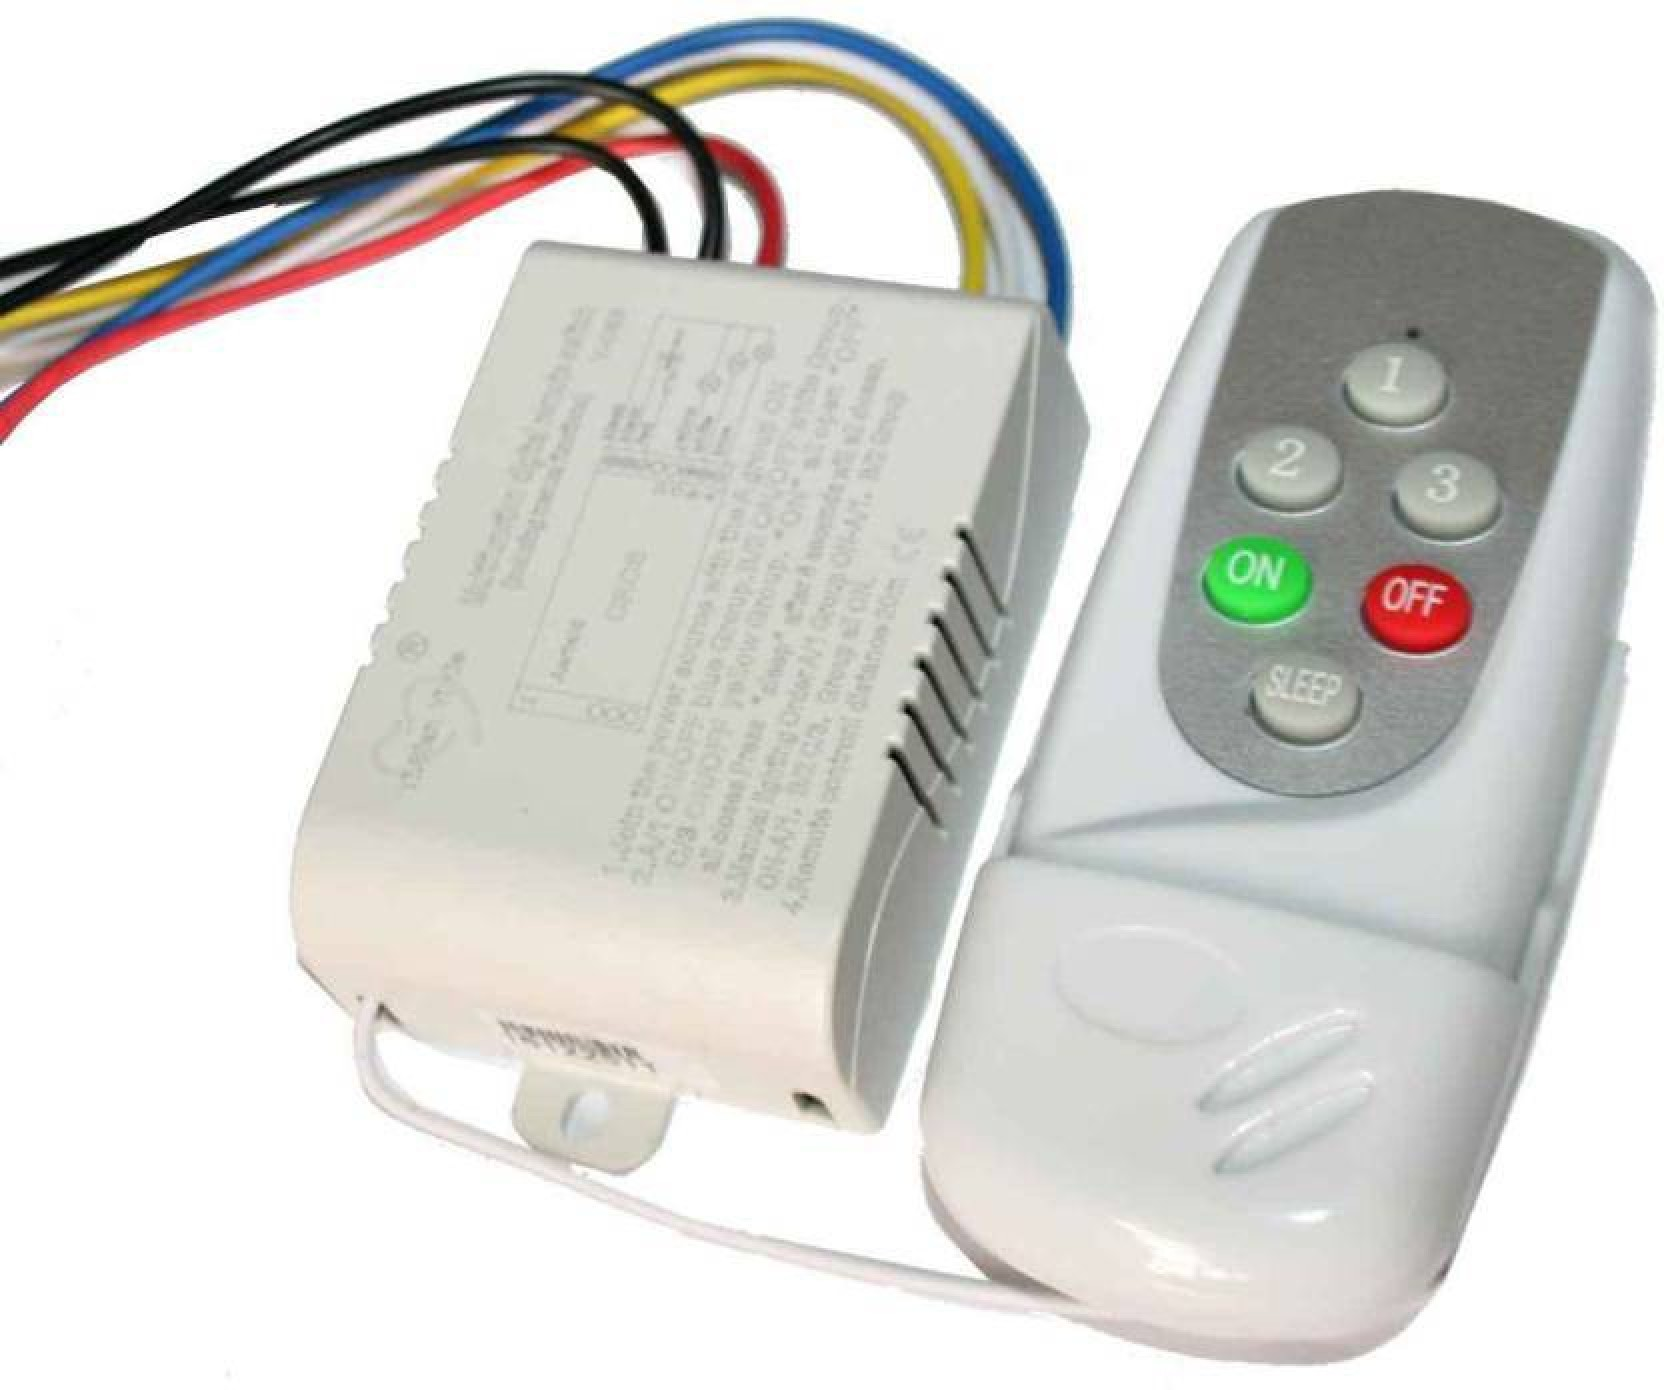 Trp Traders 3 Way Wireless Remote Control Switch For Fans And Light About 3way Digital Lamp On Off Three Electrical Add To Cart